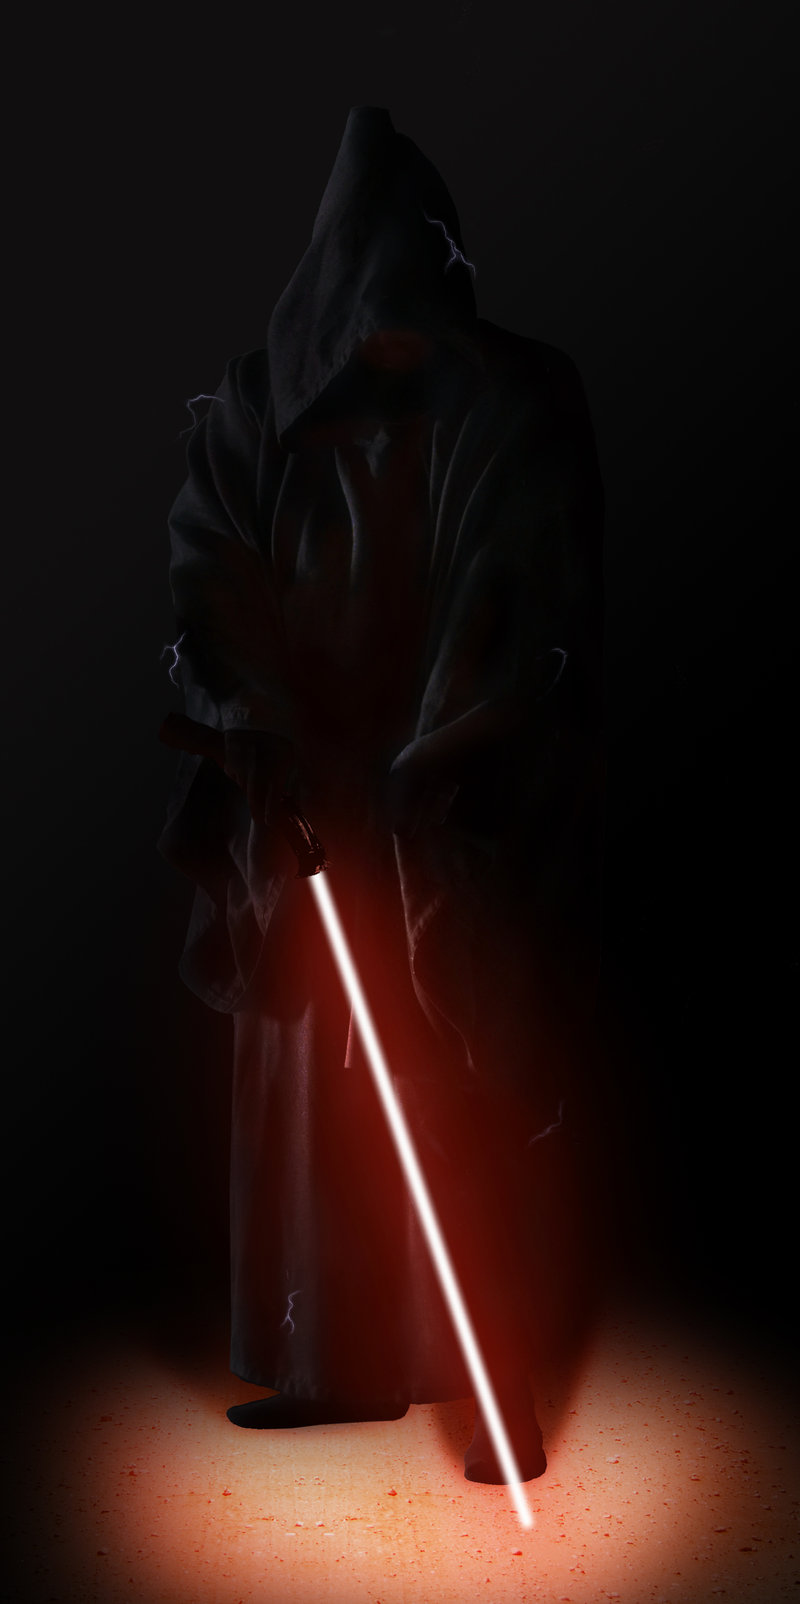 Dark lord of the sith by mt dewer